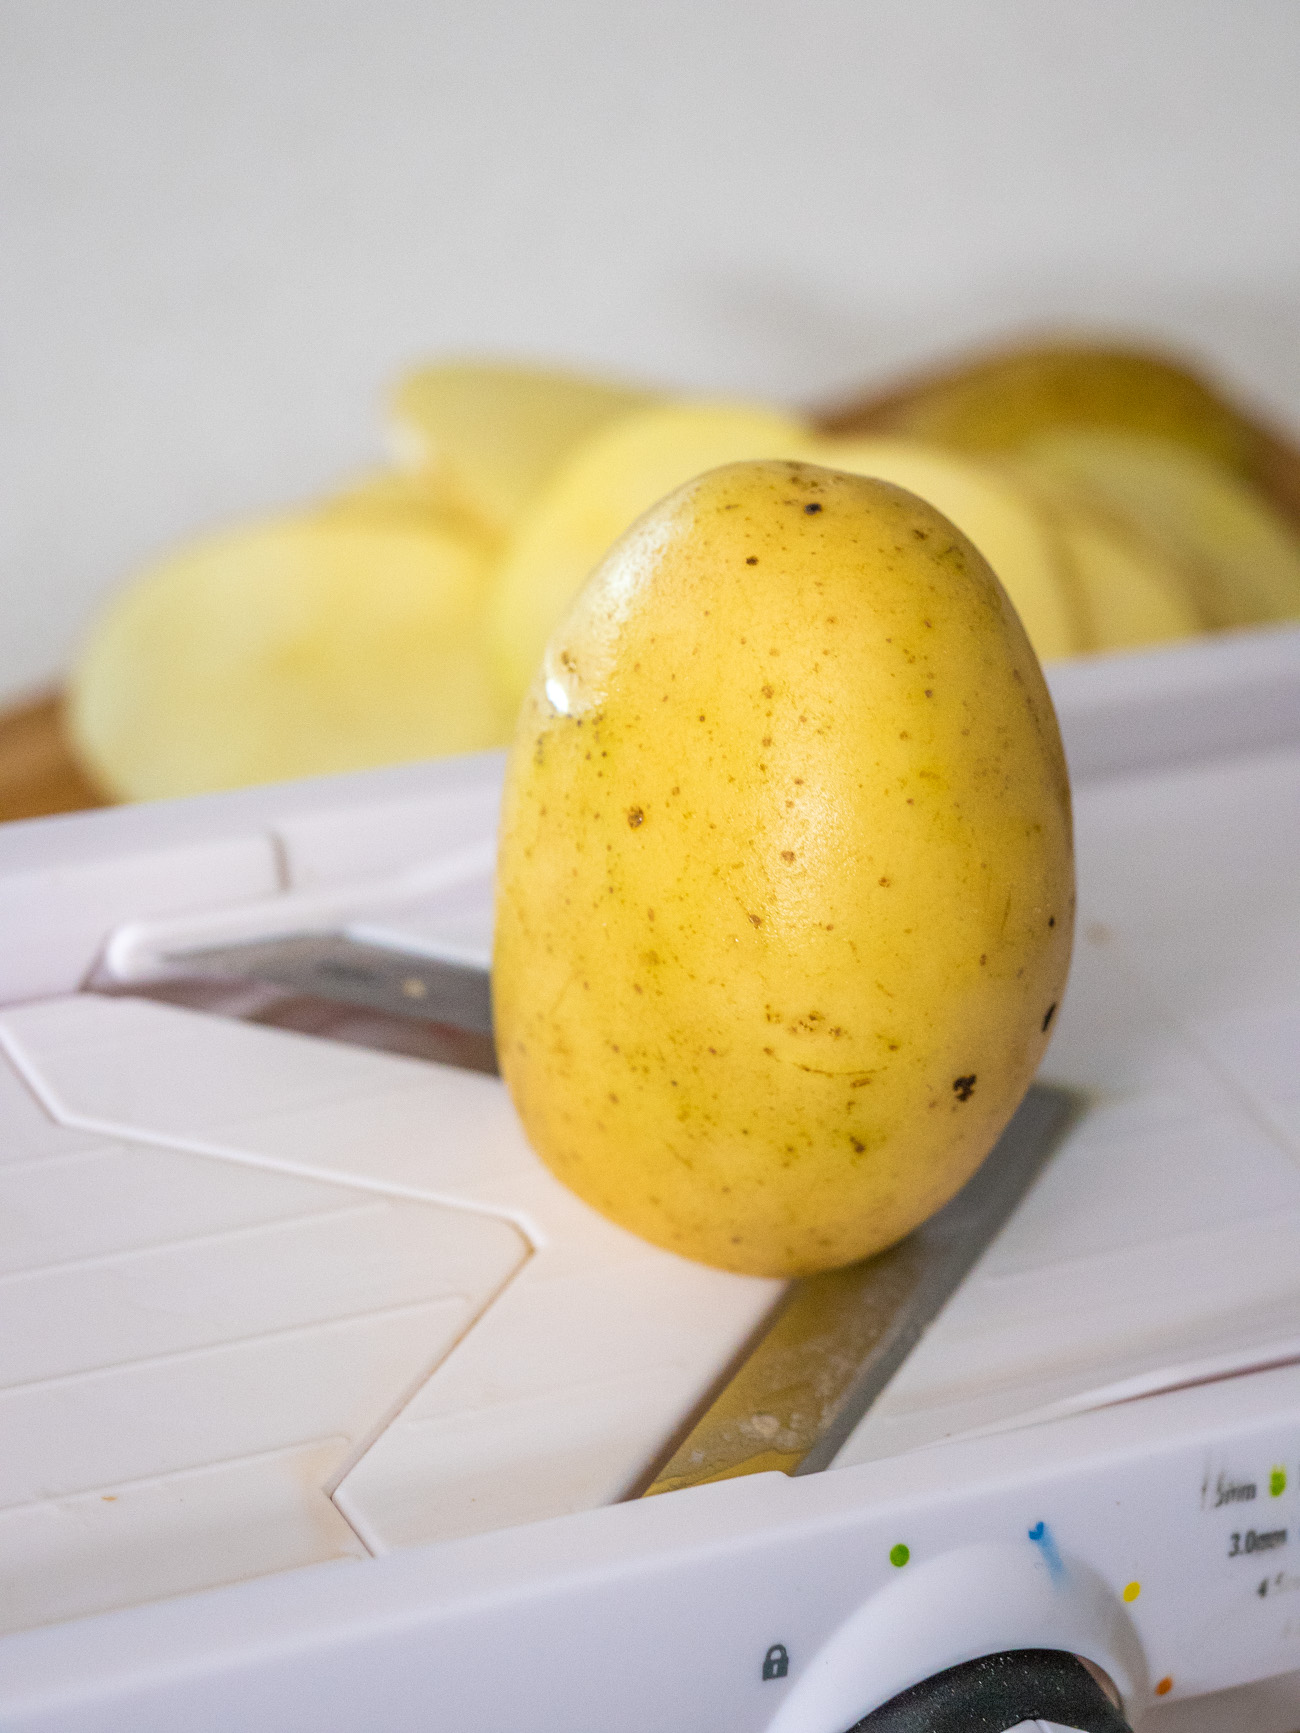 potatoes being sliced on a mandoline